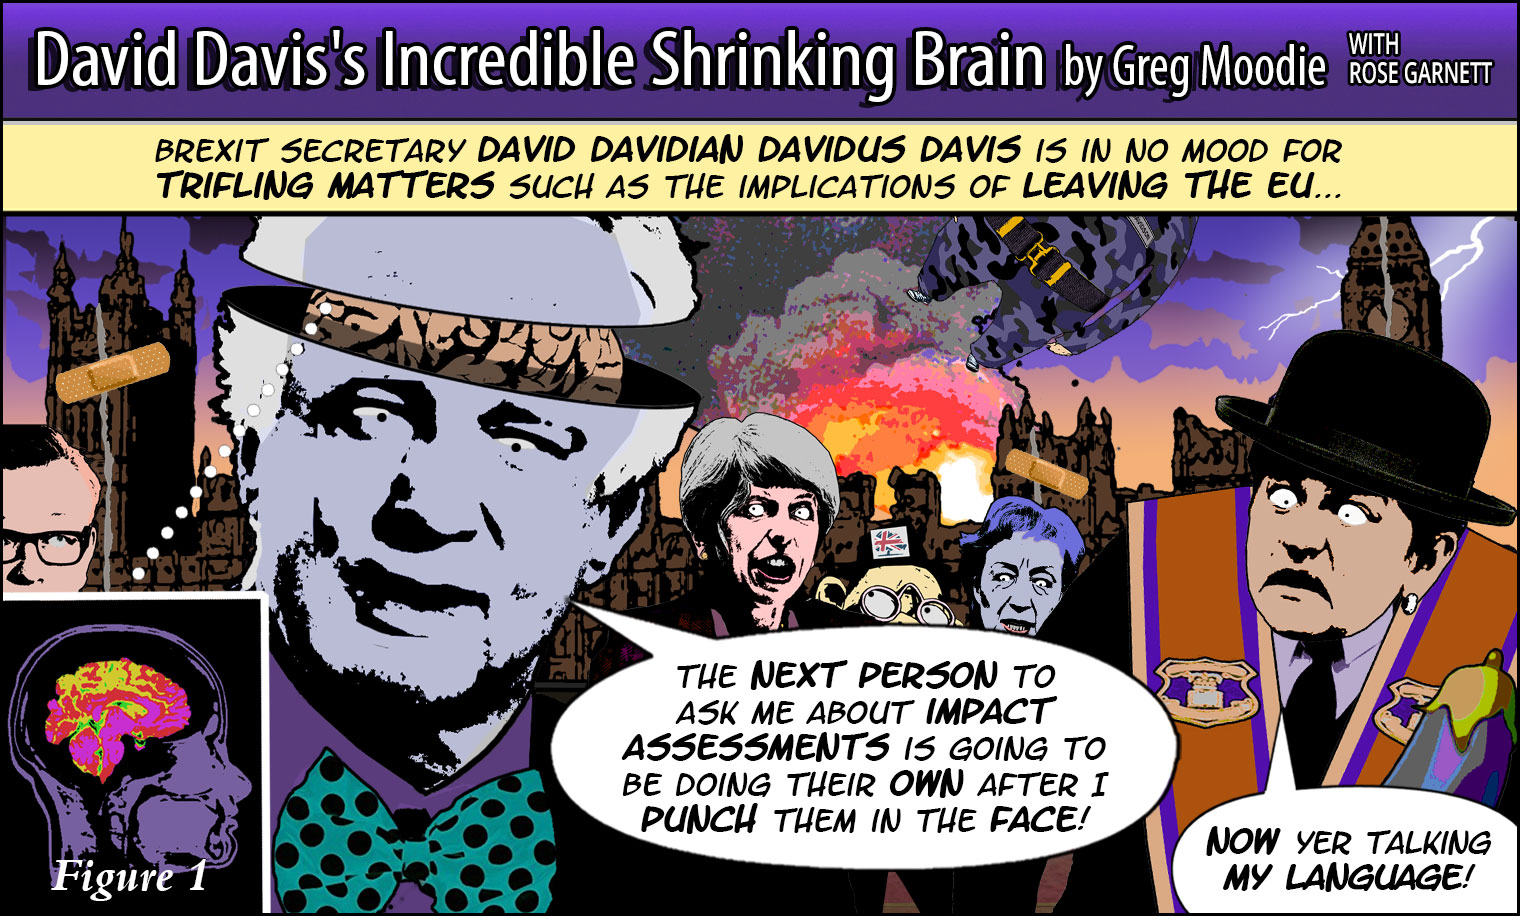 David Davis's Incredible Shrinking Brain